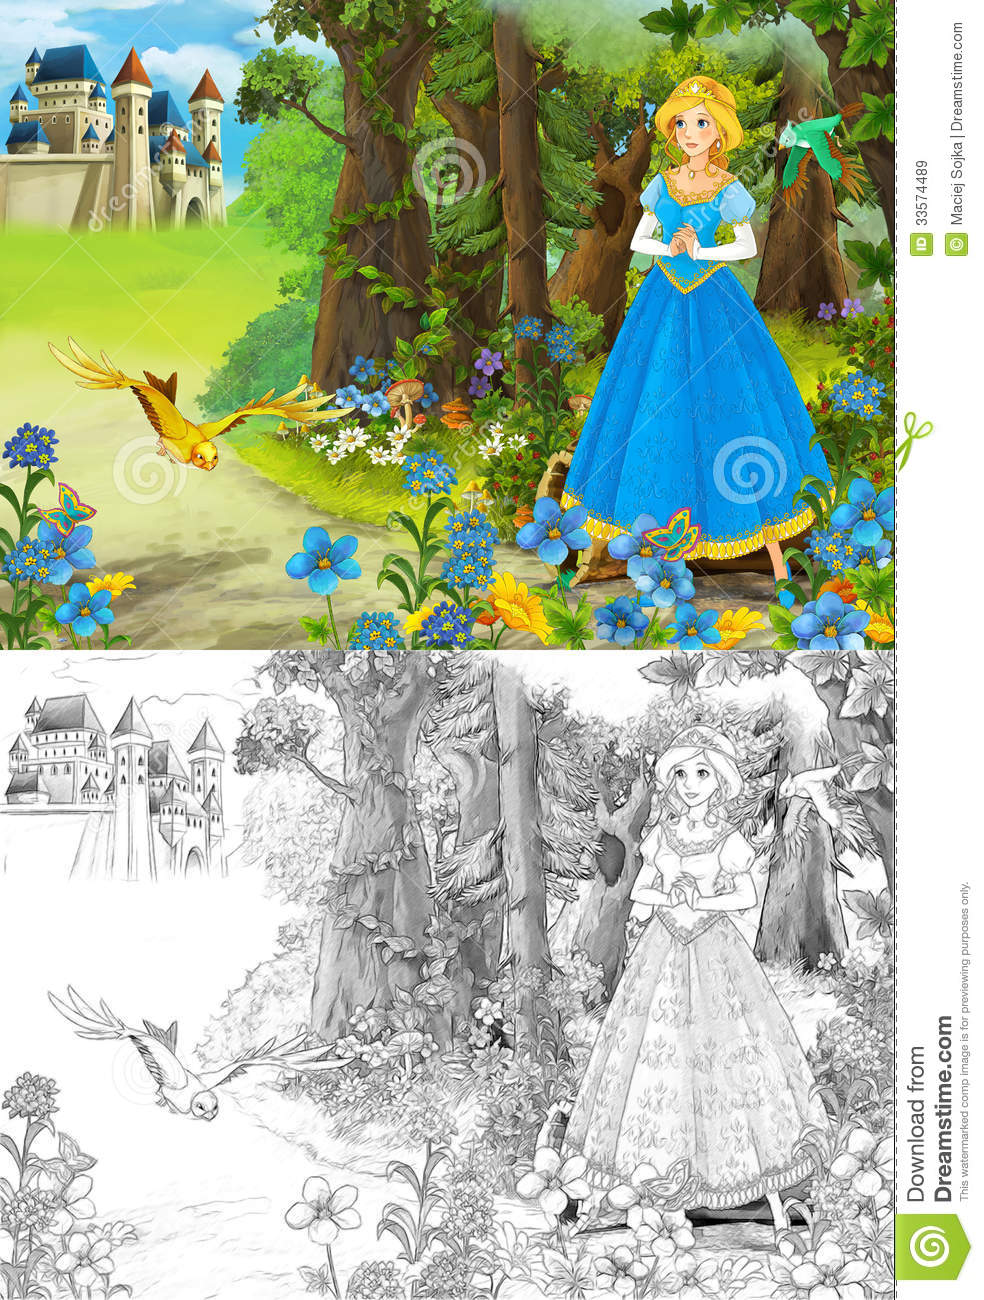 The Sketch Coloring Page Artistic Style Fairy Tale Royalty Free